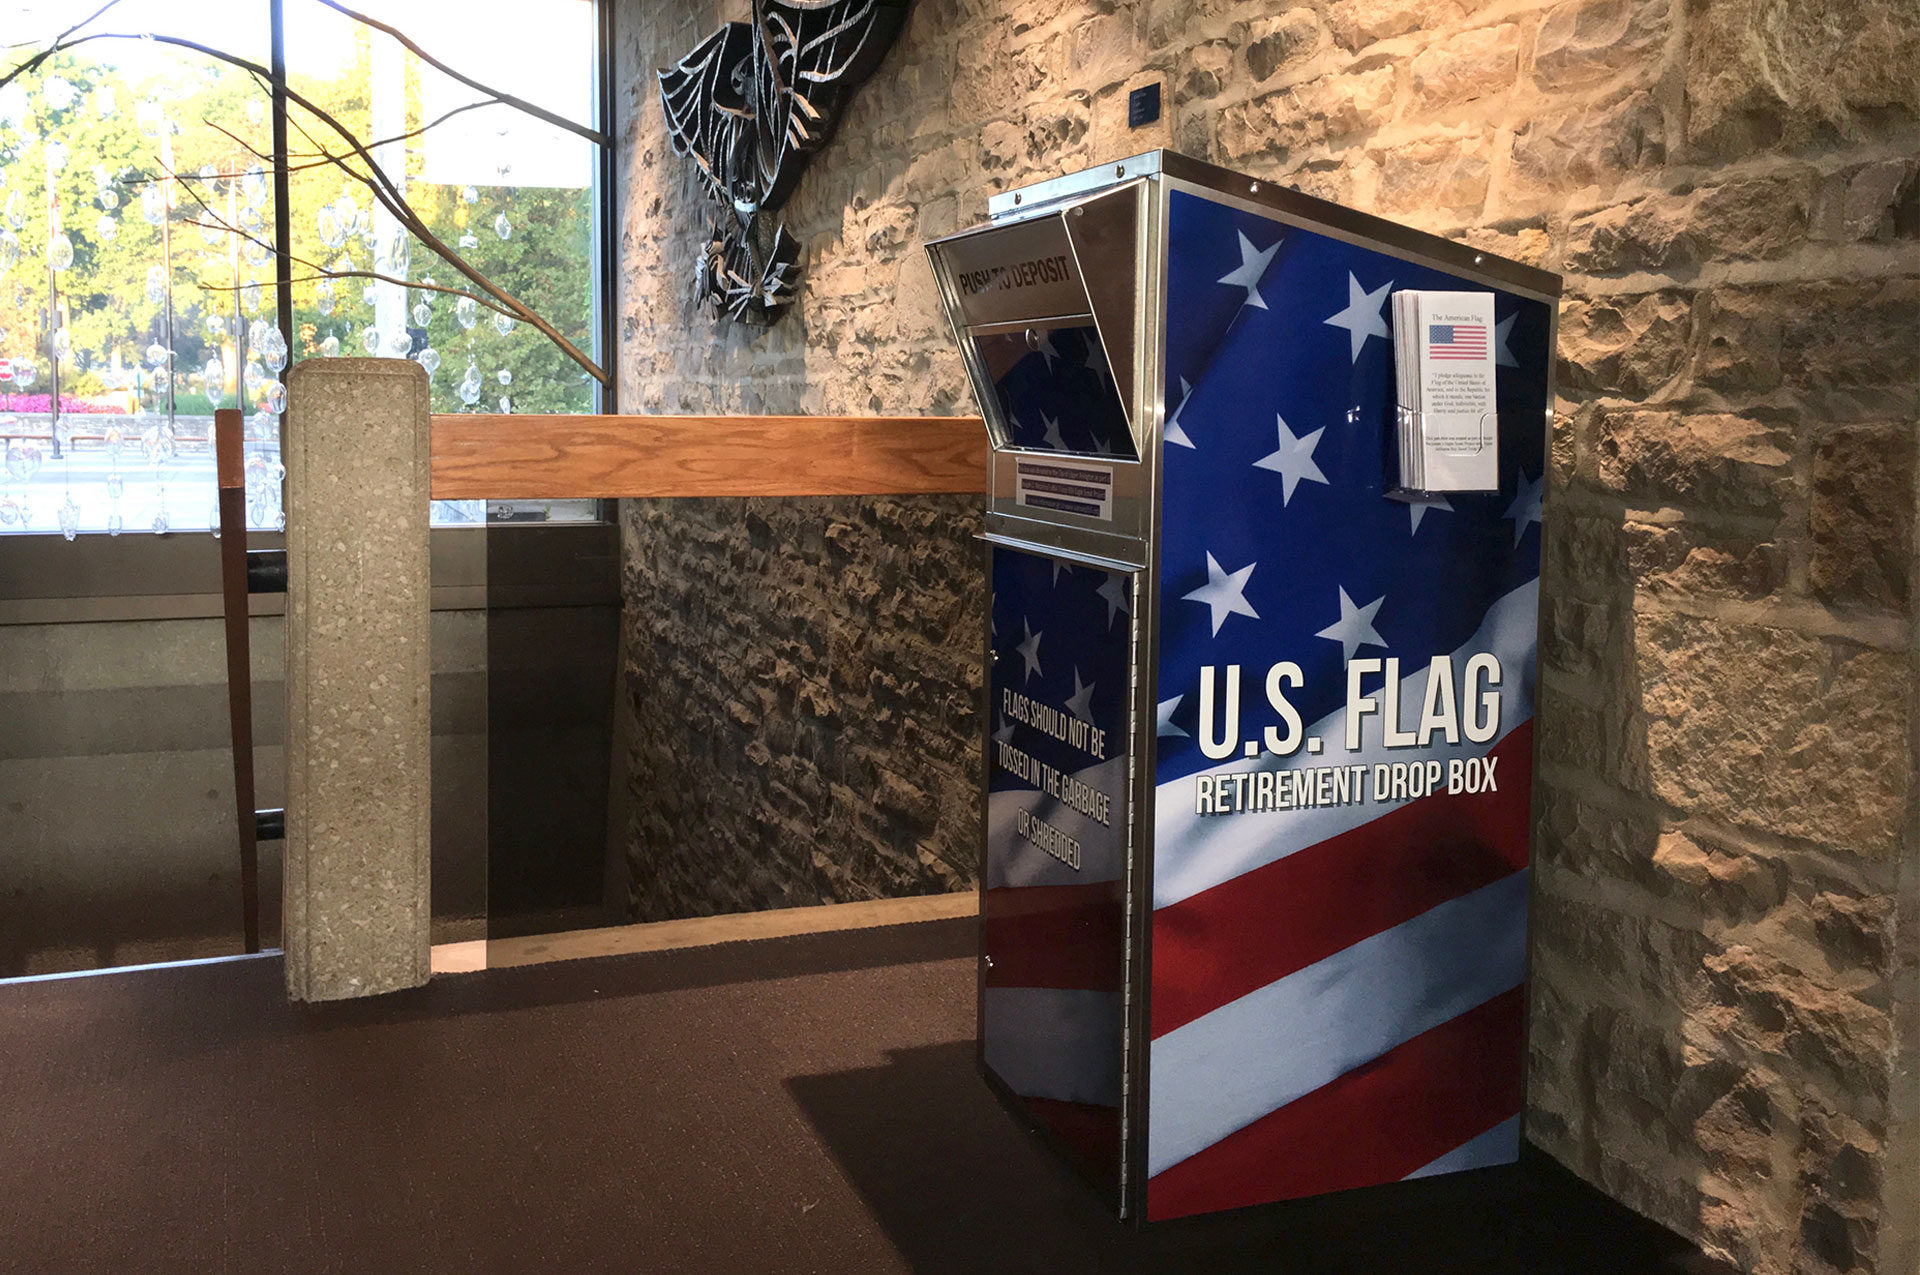 U.S. Flag Collection Box Available At Municipal Services Center